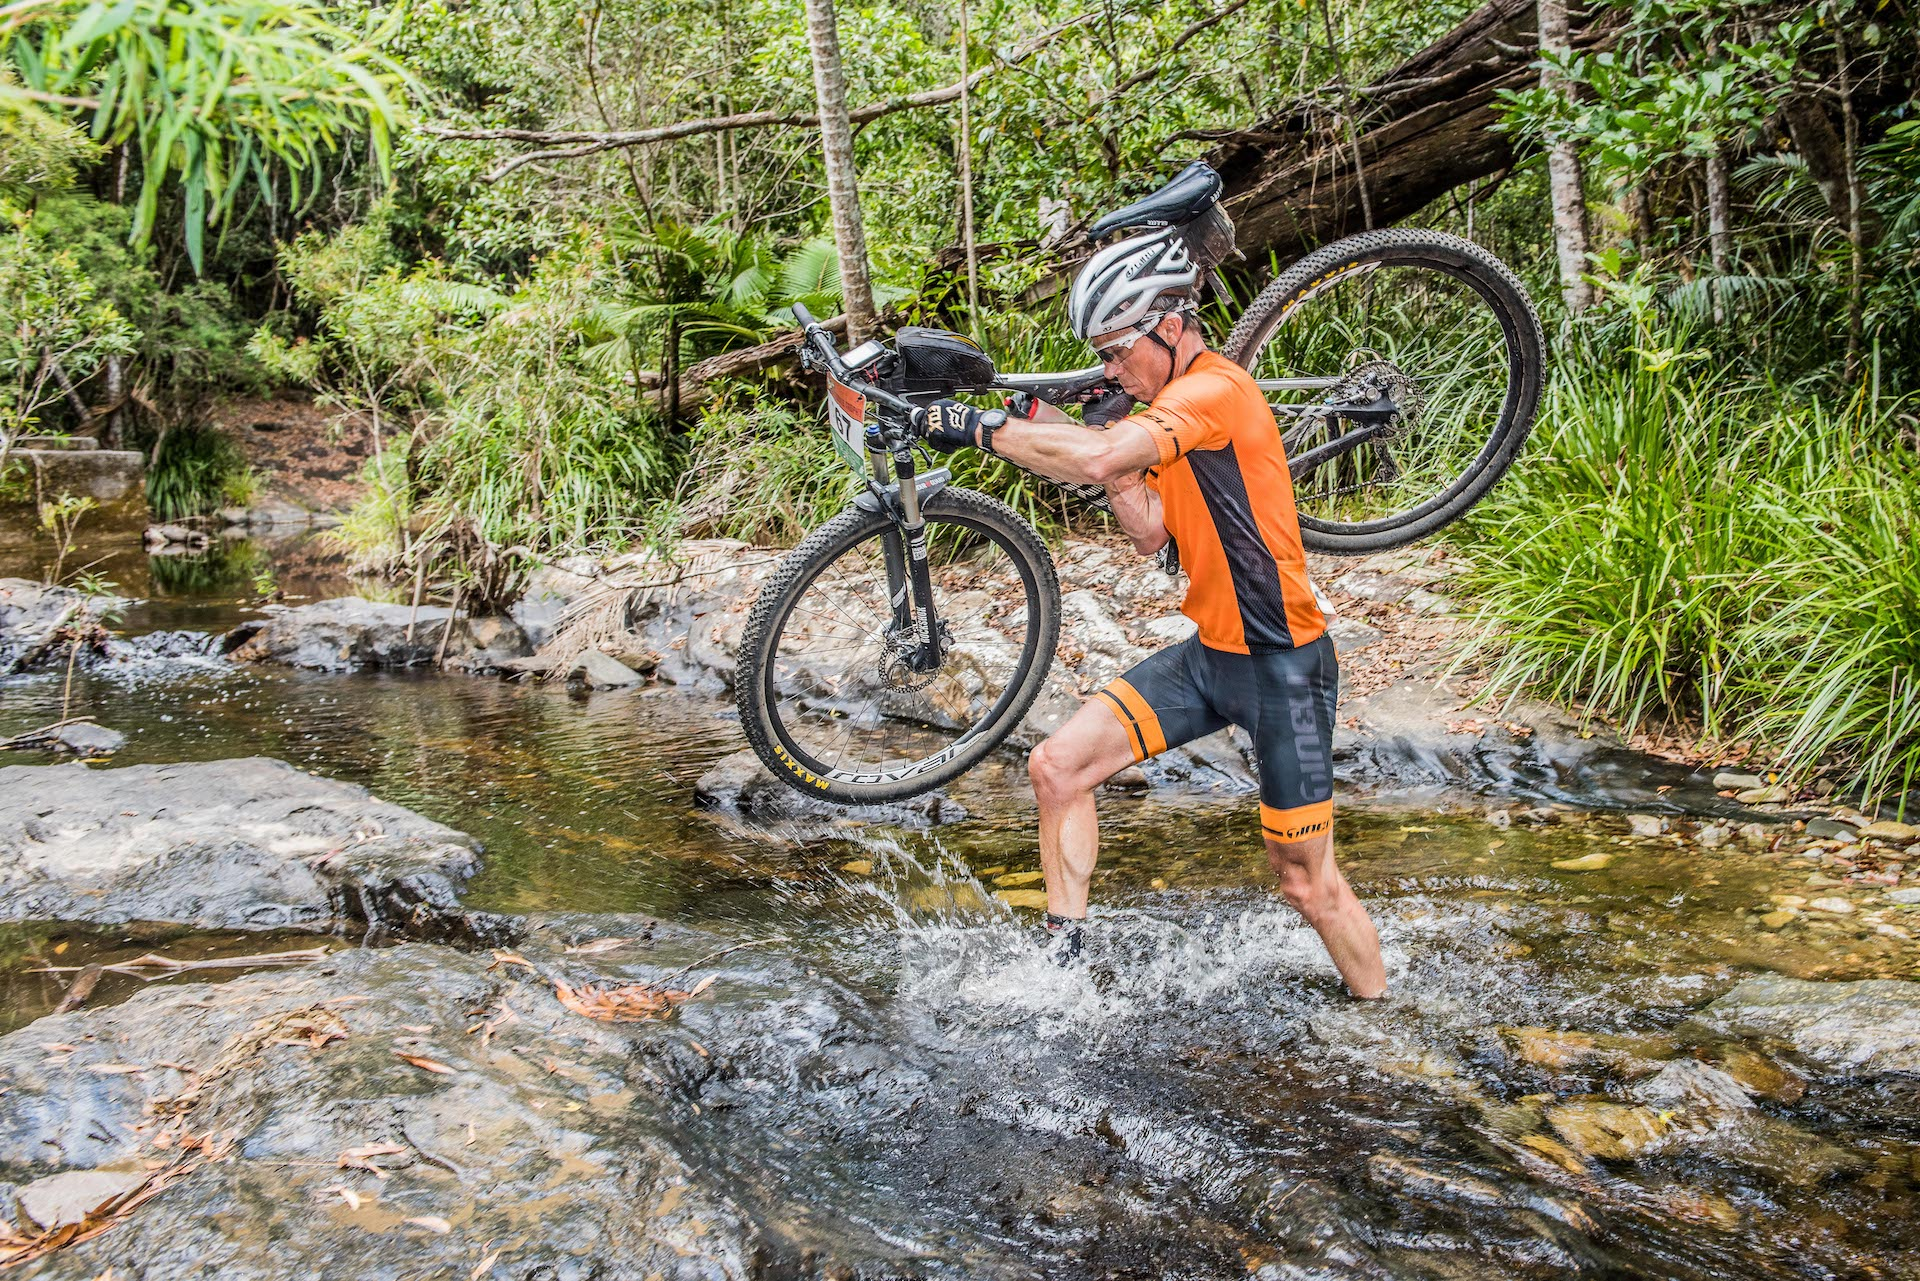 #guestblog: What bike to take to the Croc?